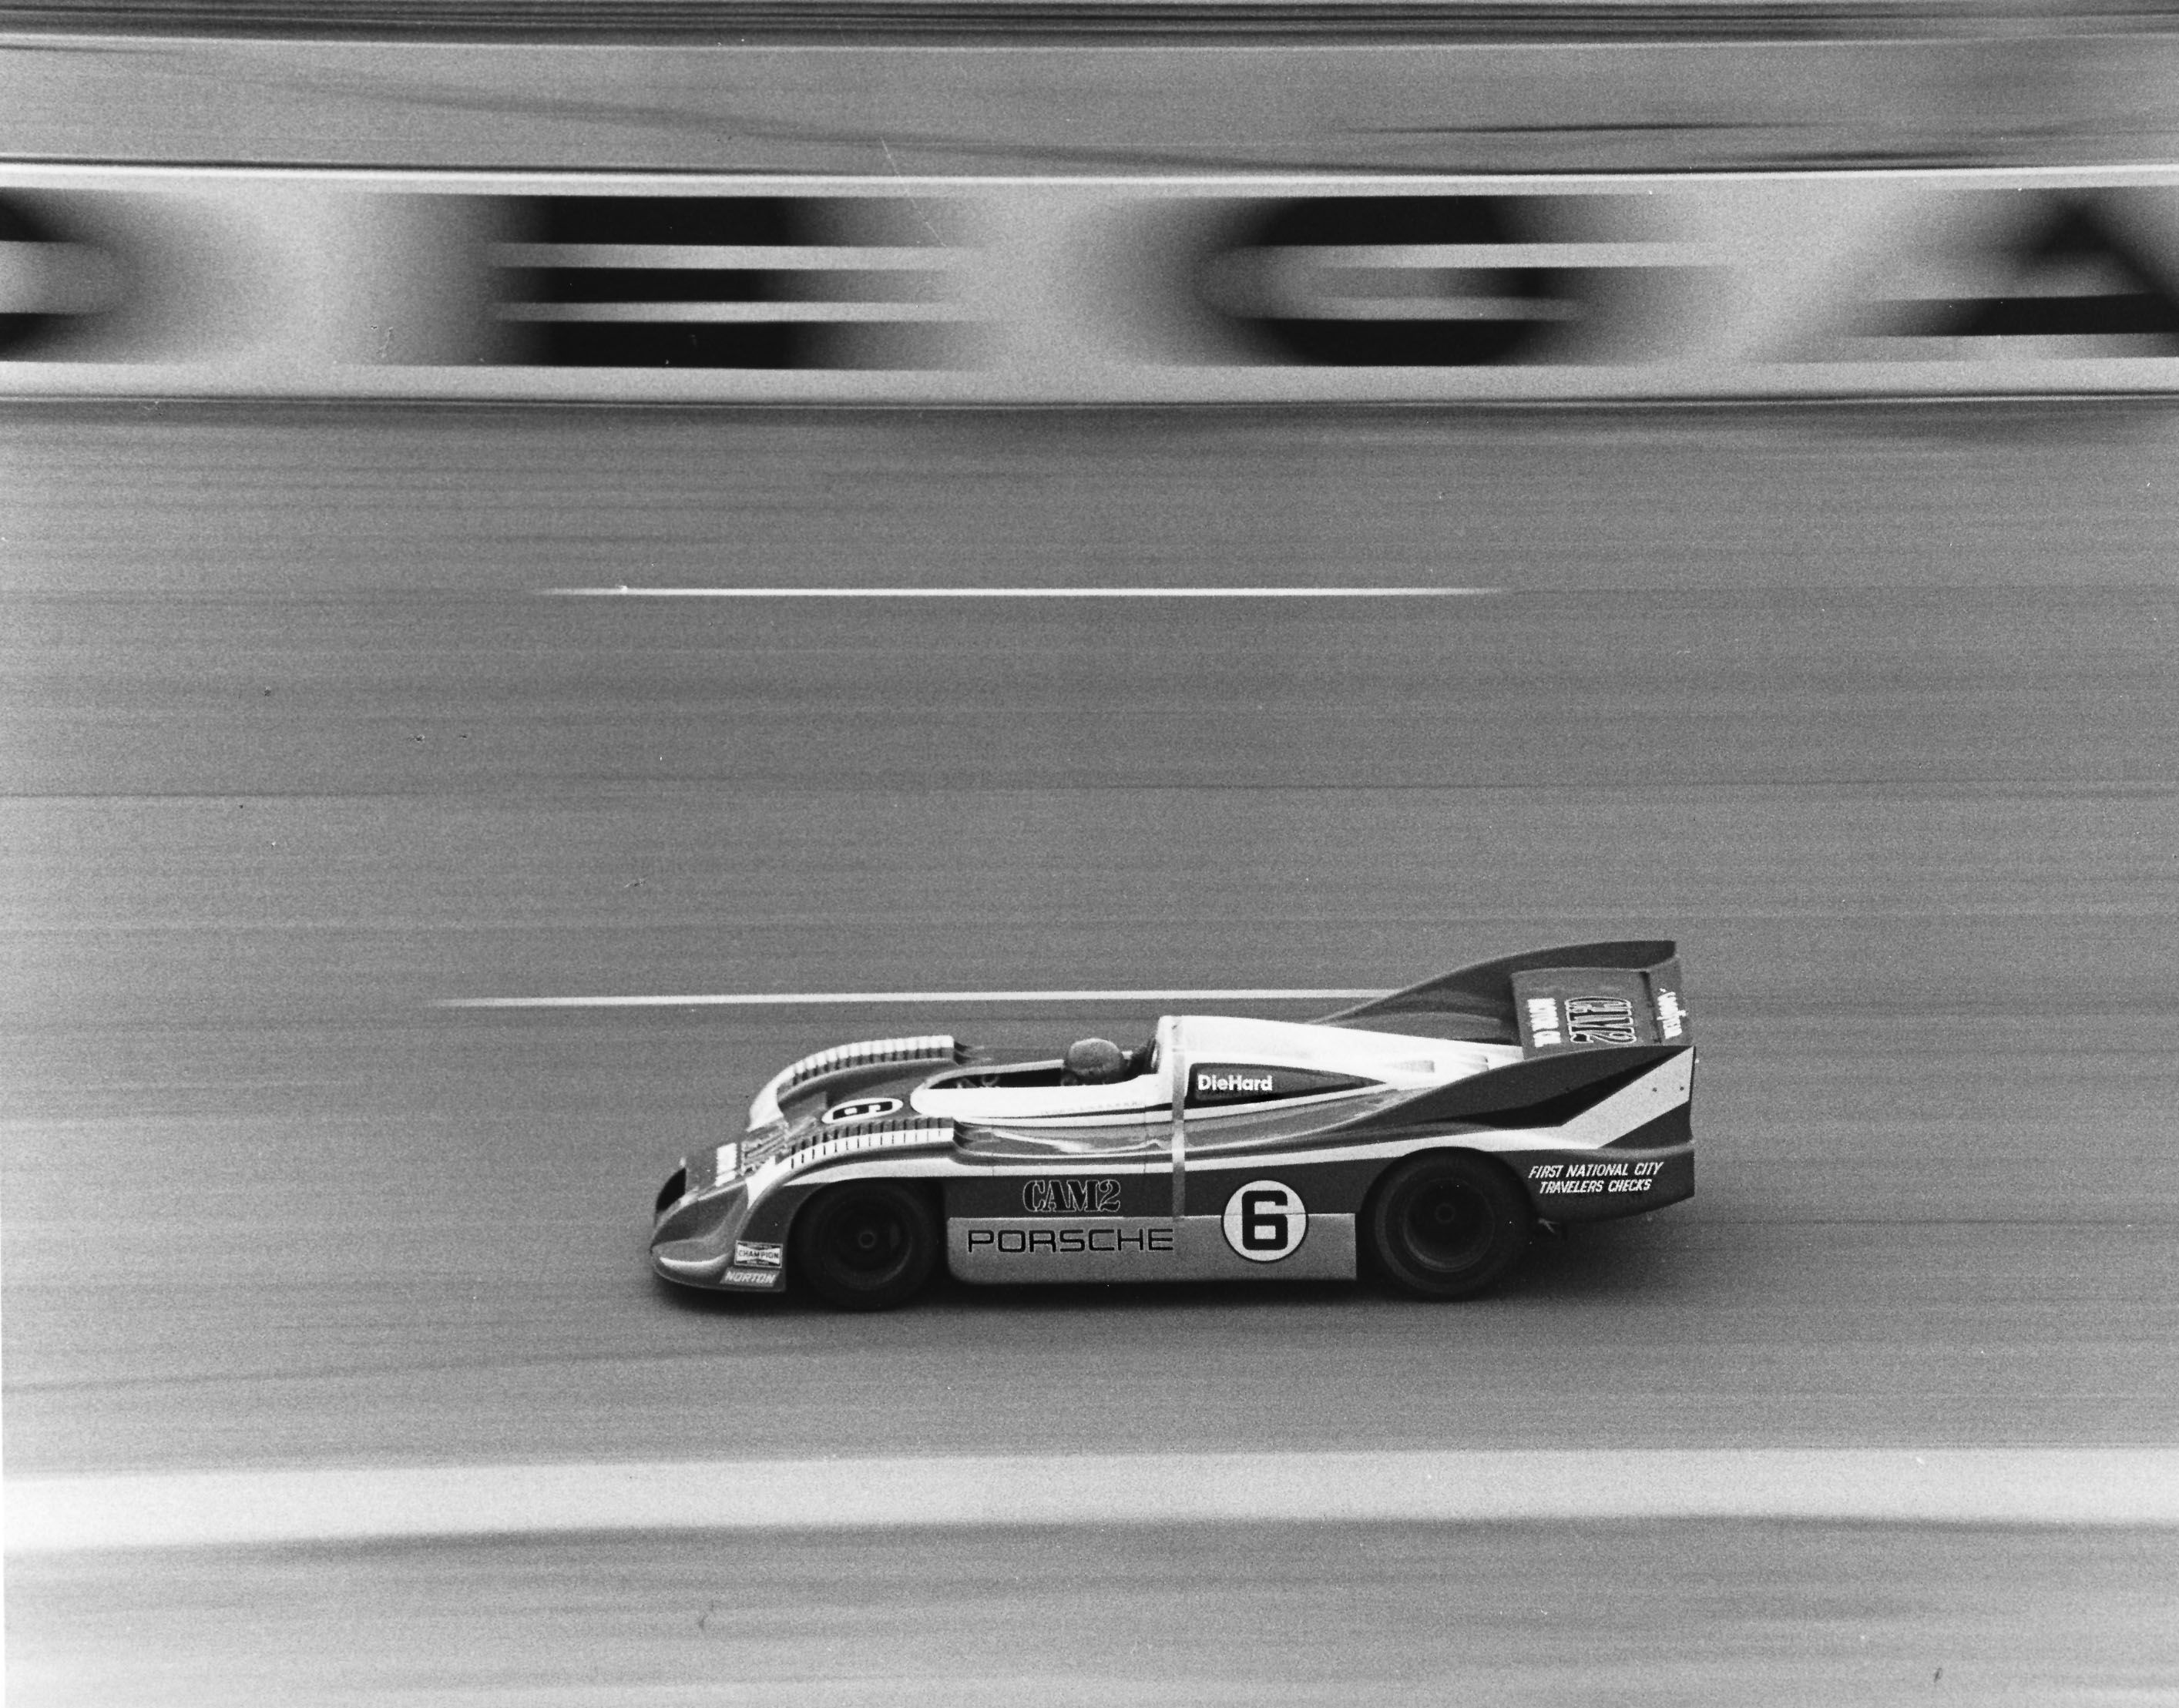 When Mark Donohue Set a World Record at Talladega in a Porsche 917